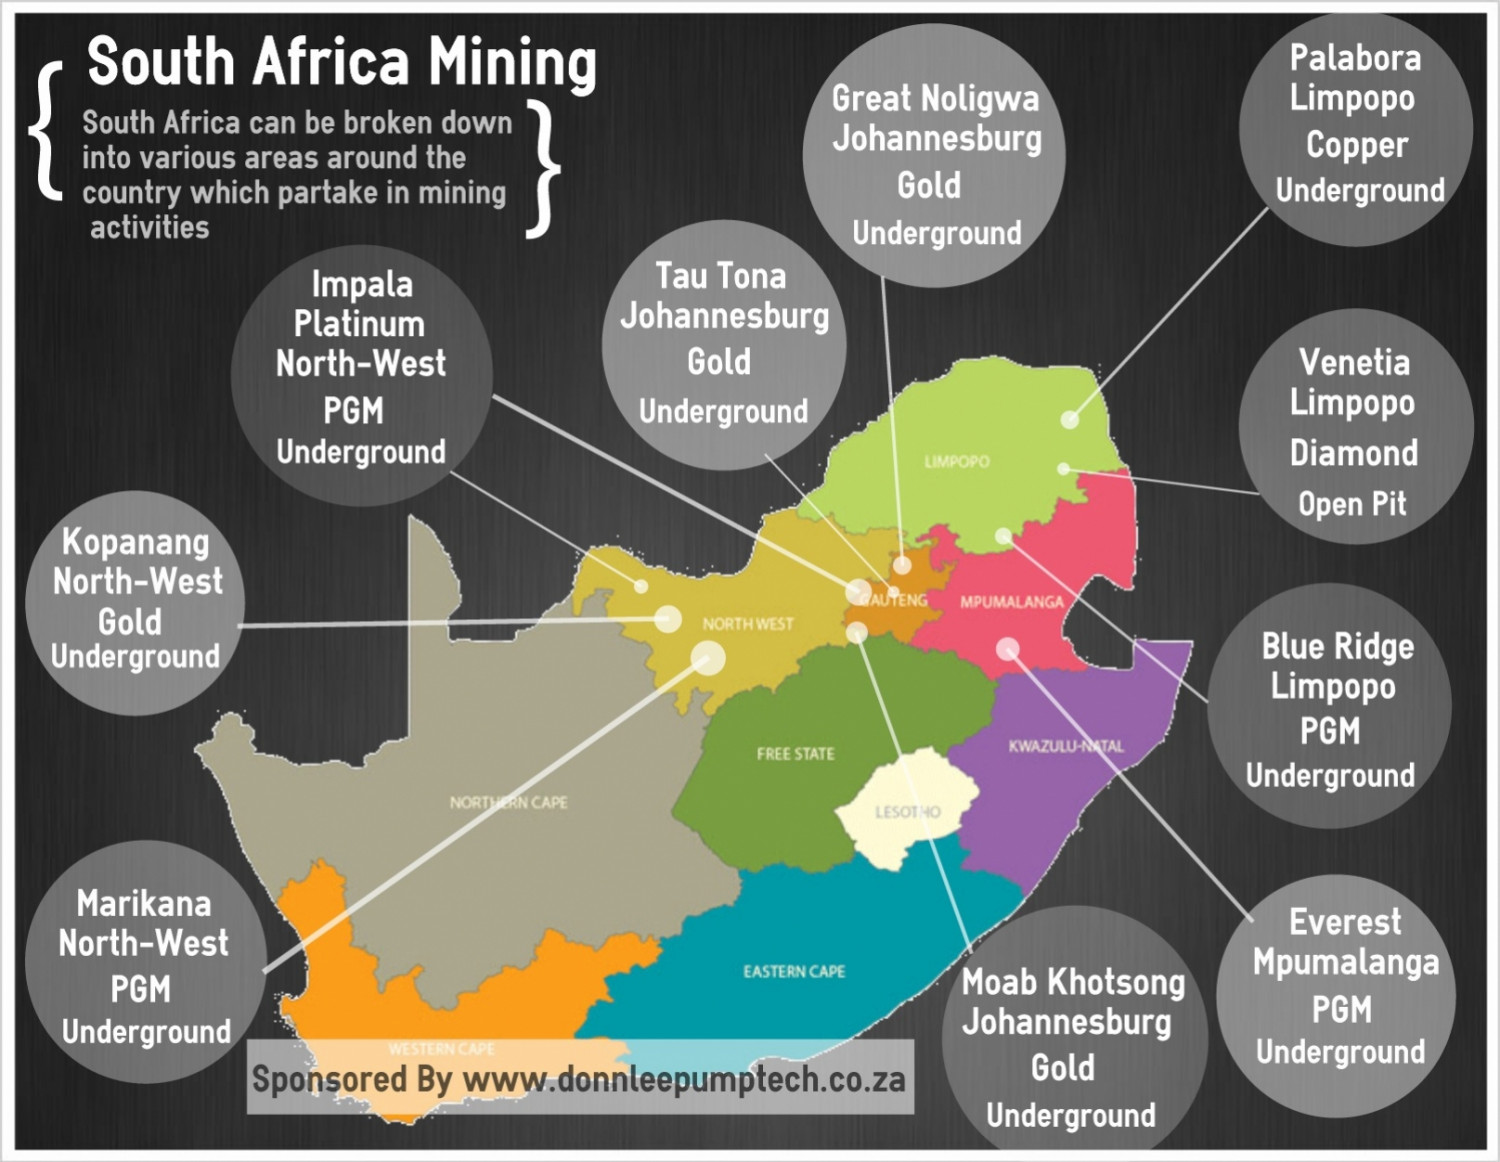 South Africa Mining Infographic